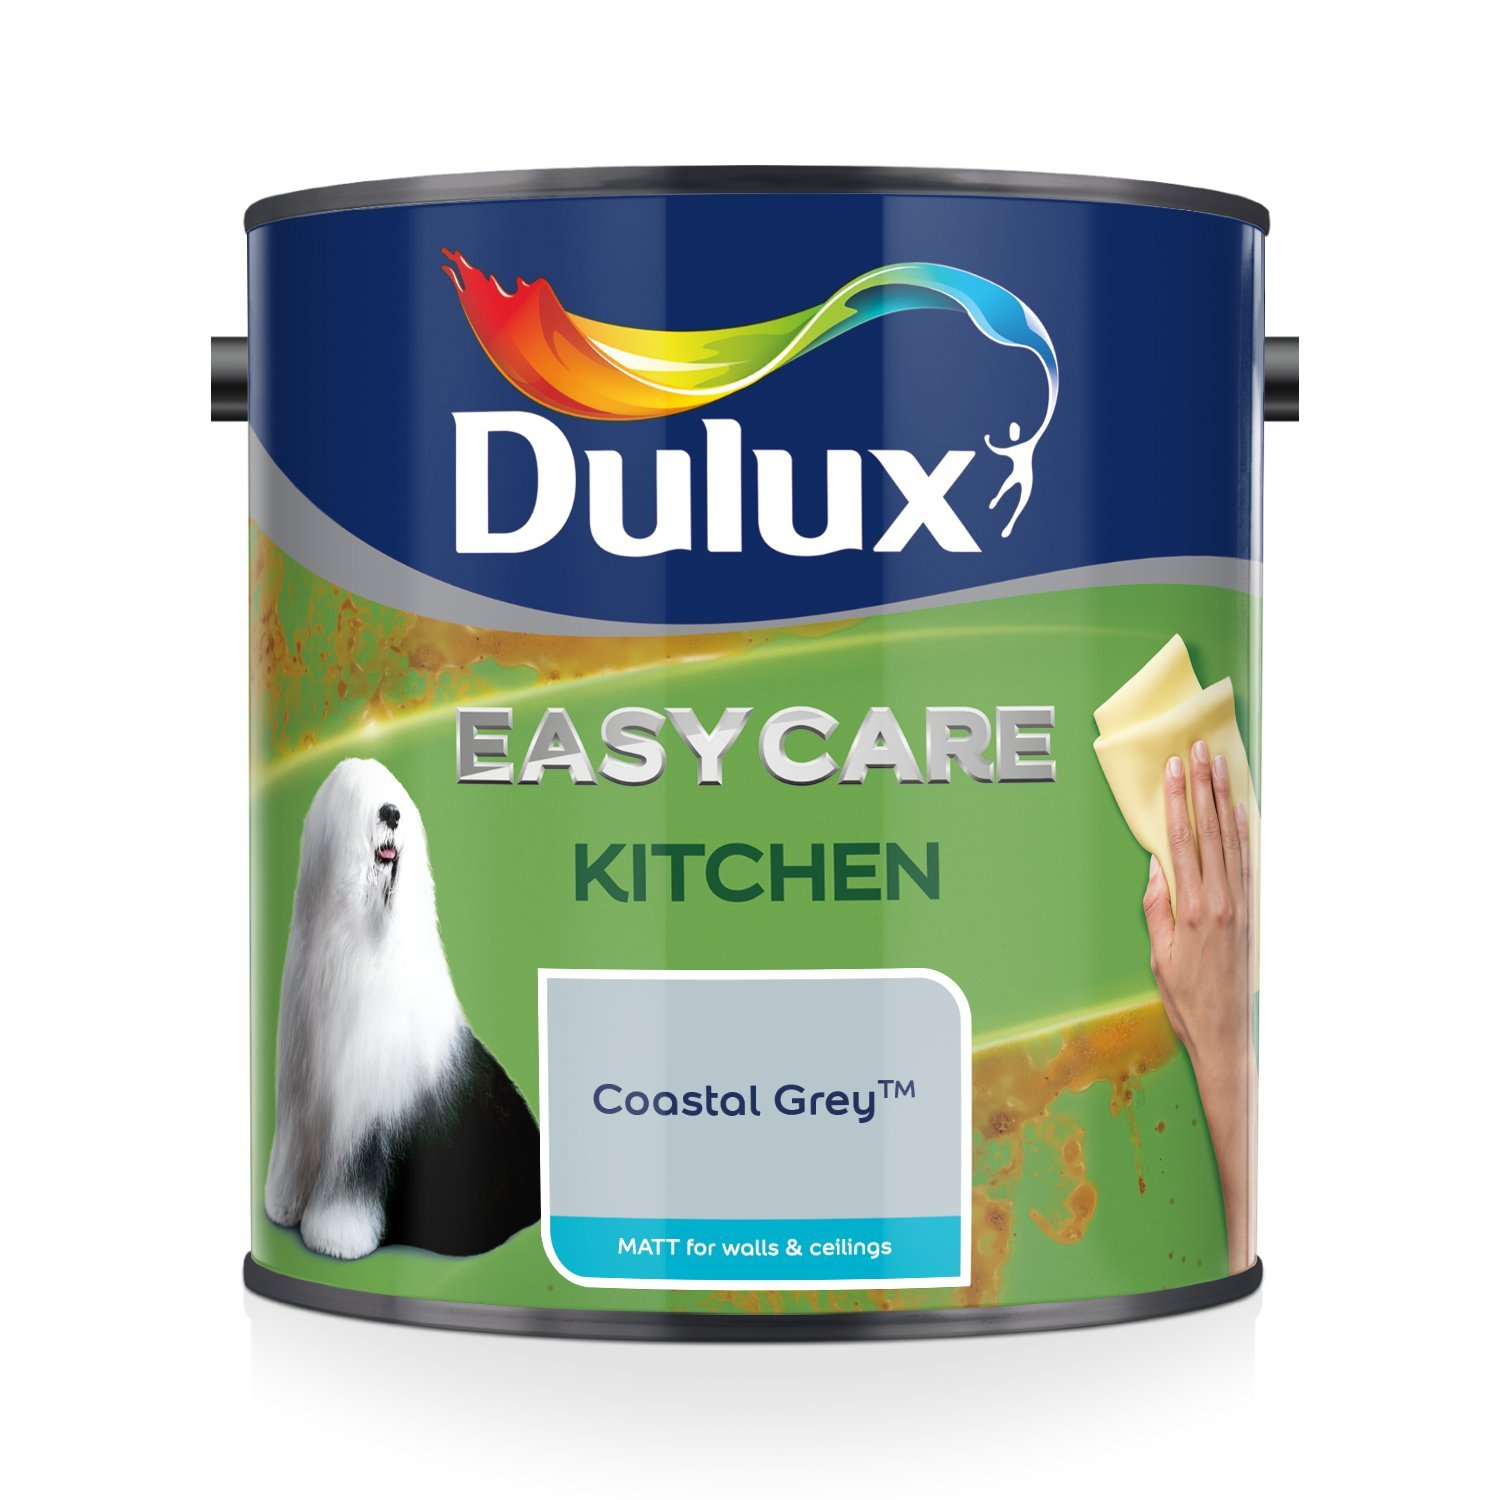 Dulux Easycare Kitchen Matt Paint - Coastal Grey 2.5L AkzoNobel 5275843